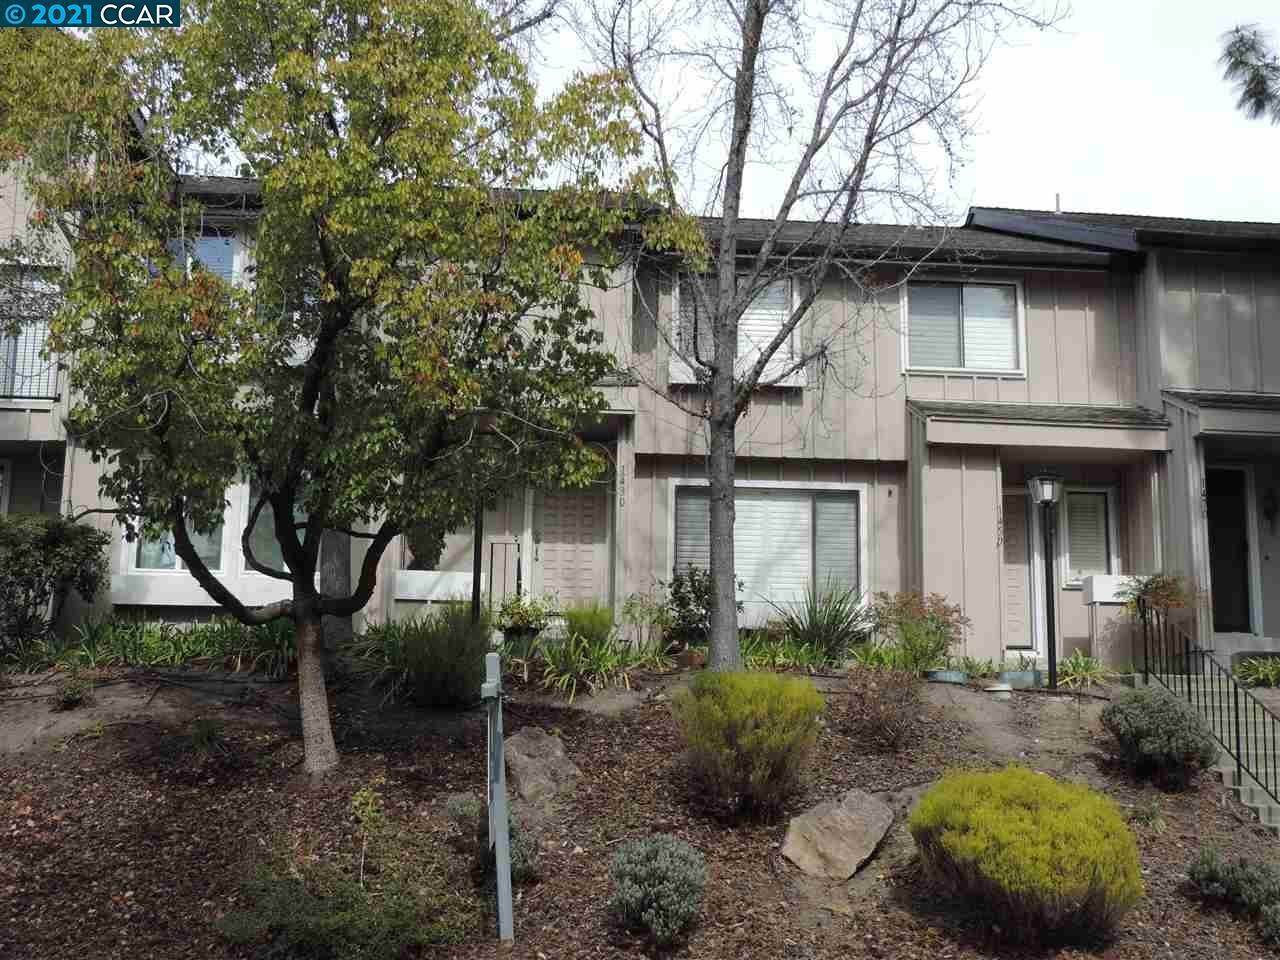 townhouses at 1430 Tampico Place Walnut Creek, カリフォルニア 94598 アメリカ